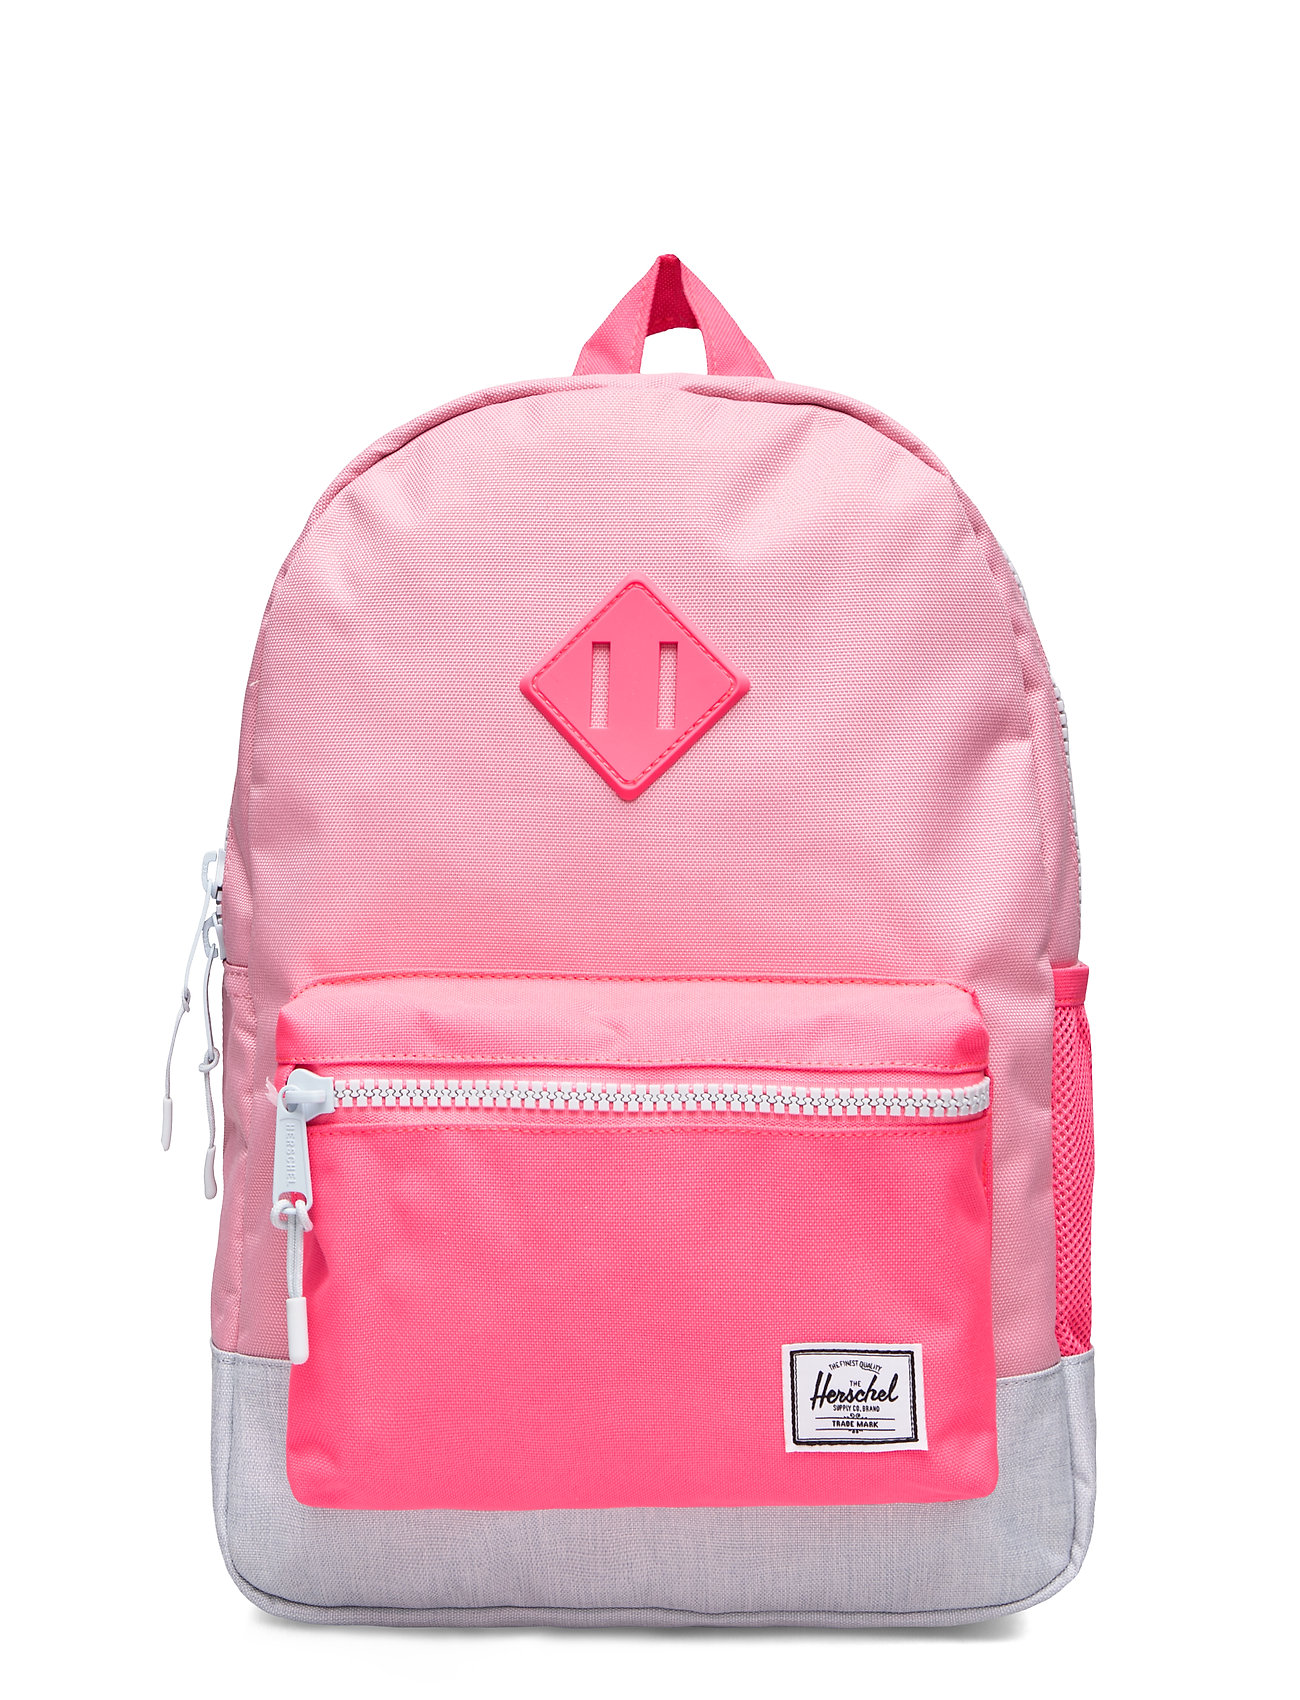 Image of Heritage Youth-Peony/Neon Pink/Ballad Blue Pastel Accessories Bags Backpacks Lyserød Herschel (3359211275)